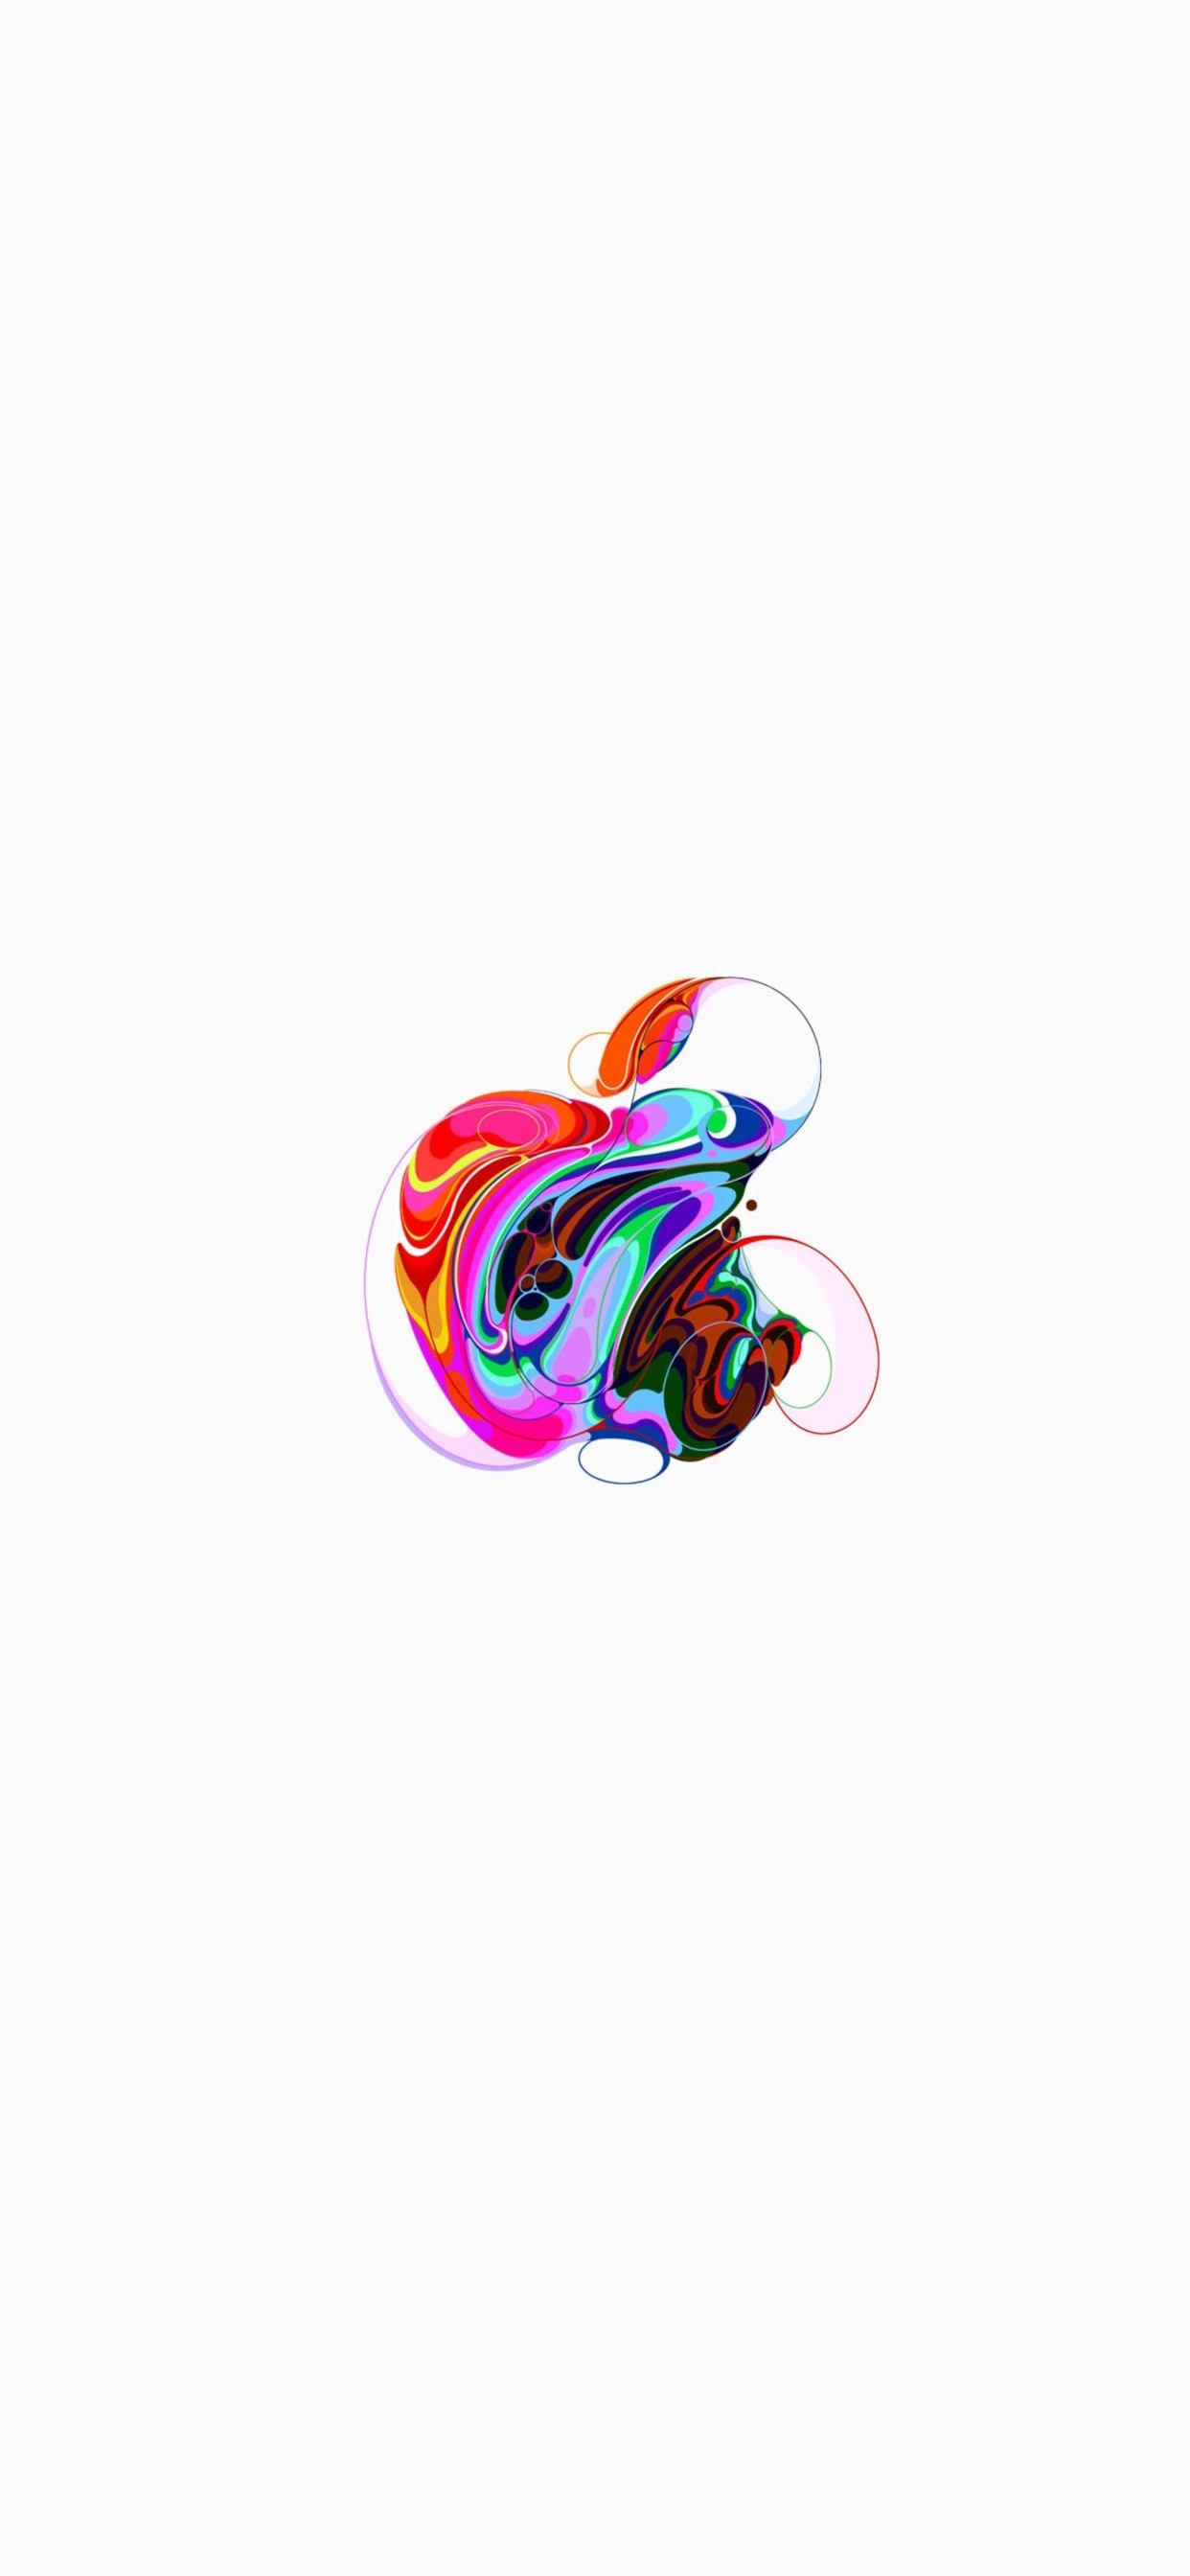 31 Apple logo